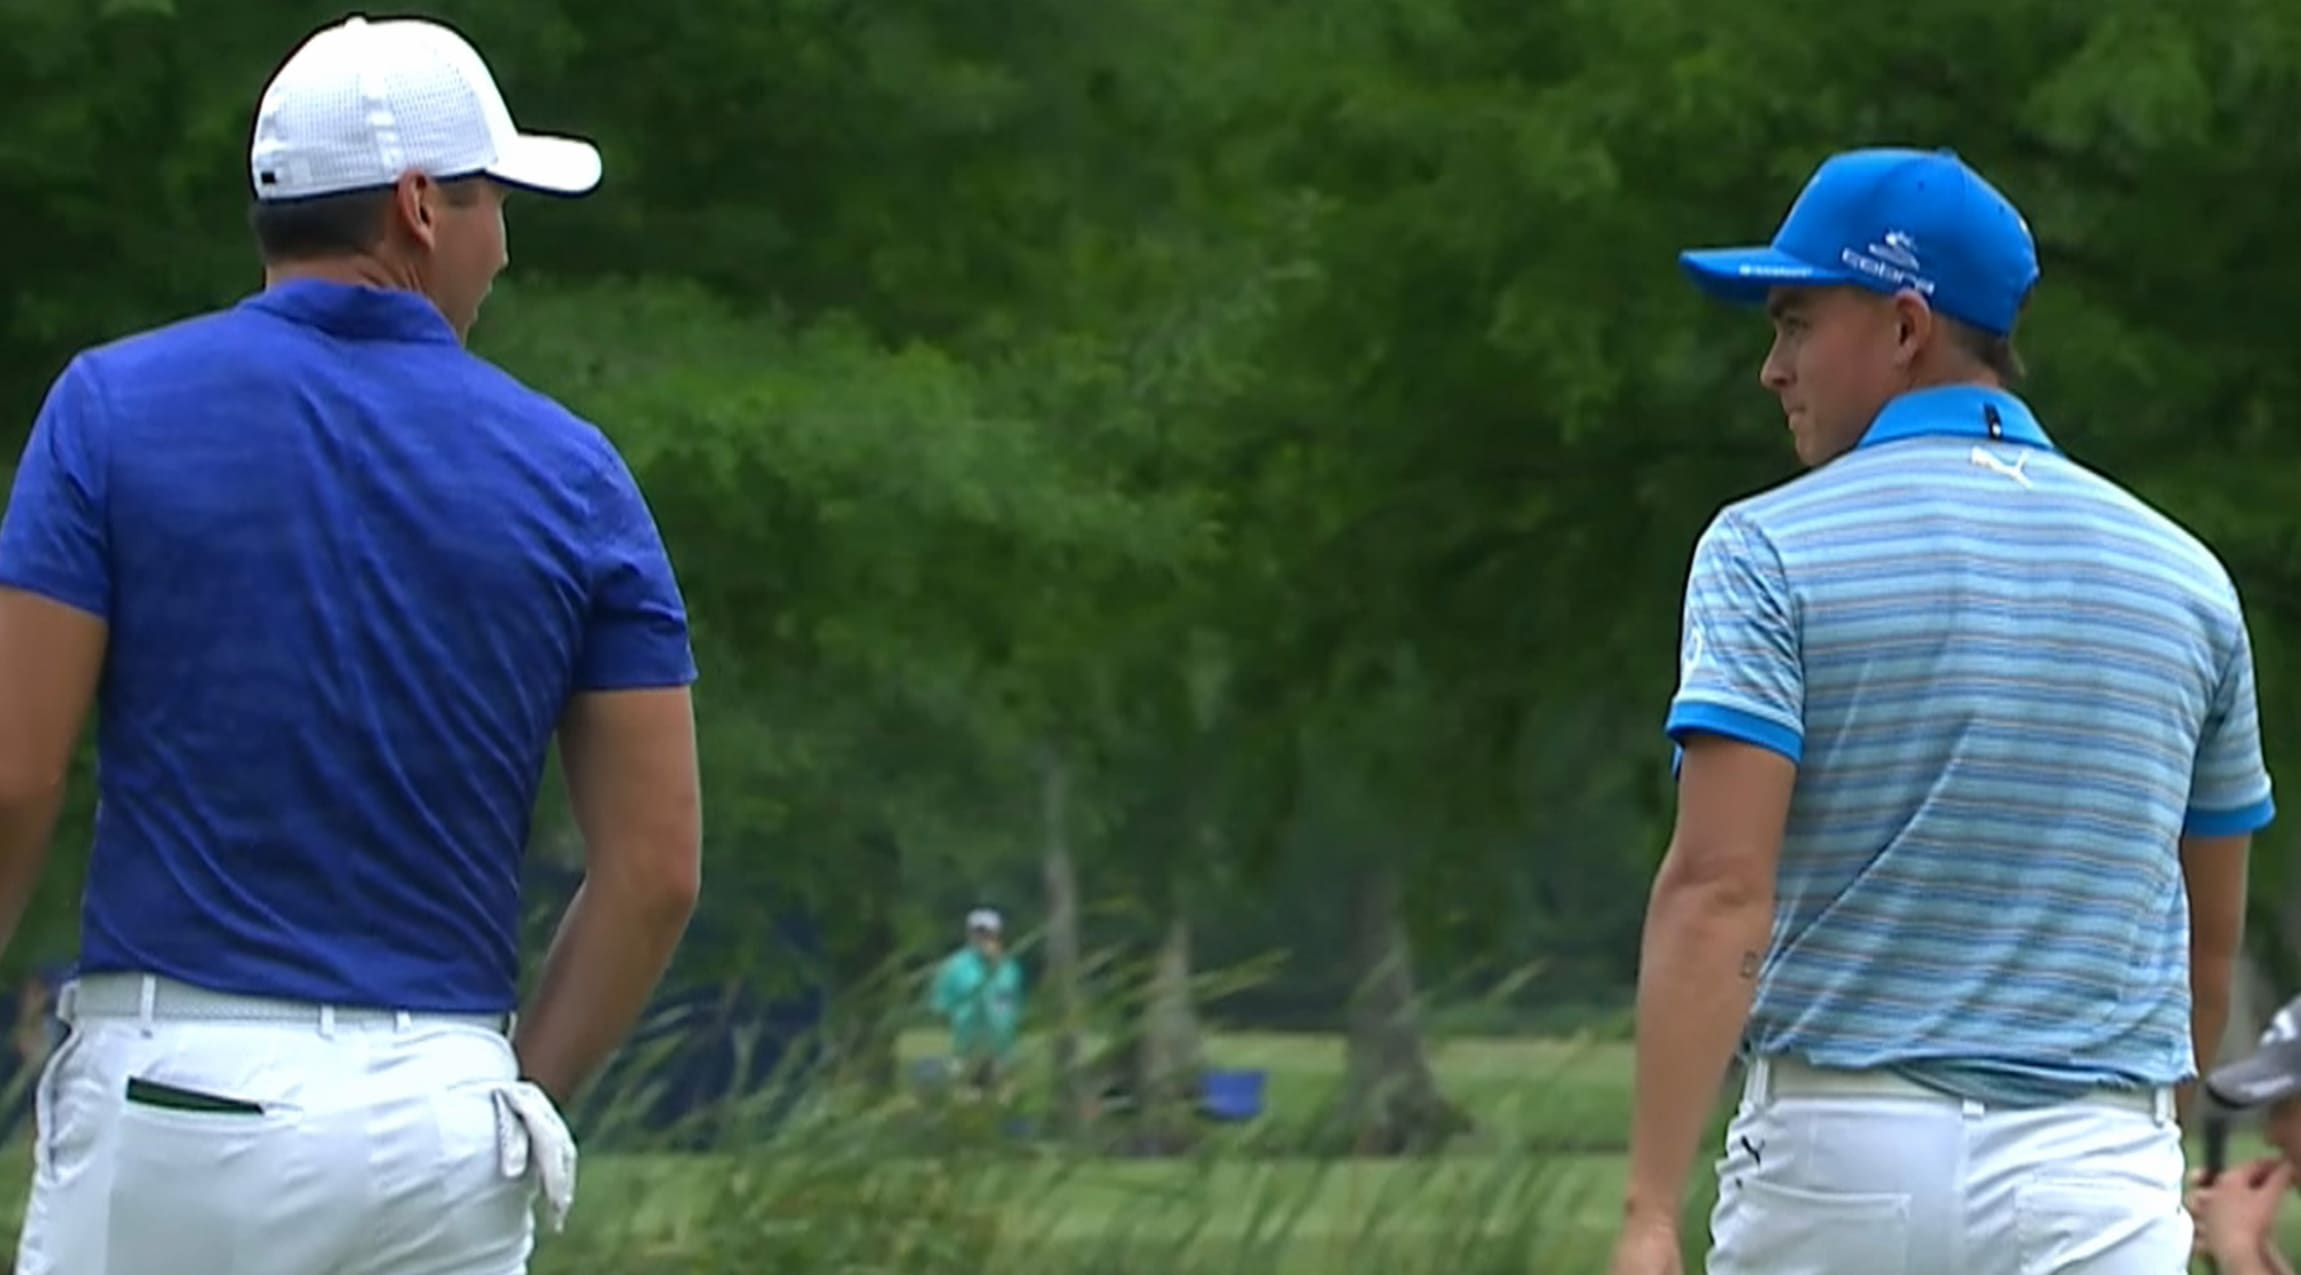 63fbcf01cb8 Highlights Rickie Fowler par-saving putt covers the distance at Zurich  During second-round Four-ball play at the 2017 Zurich Classic of New  Orleans